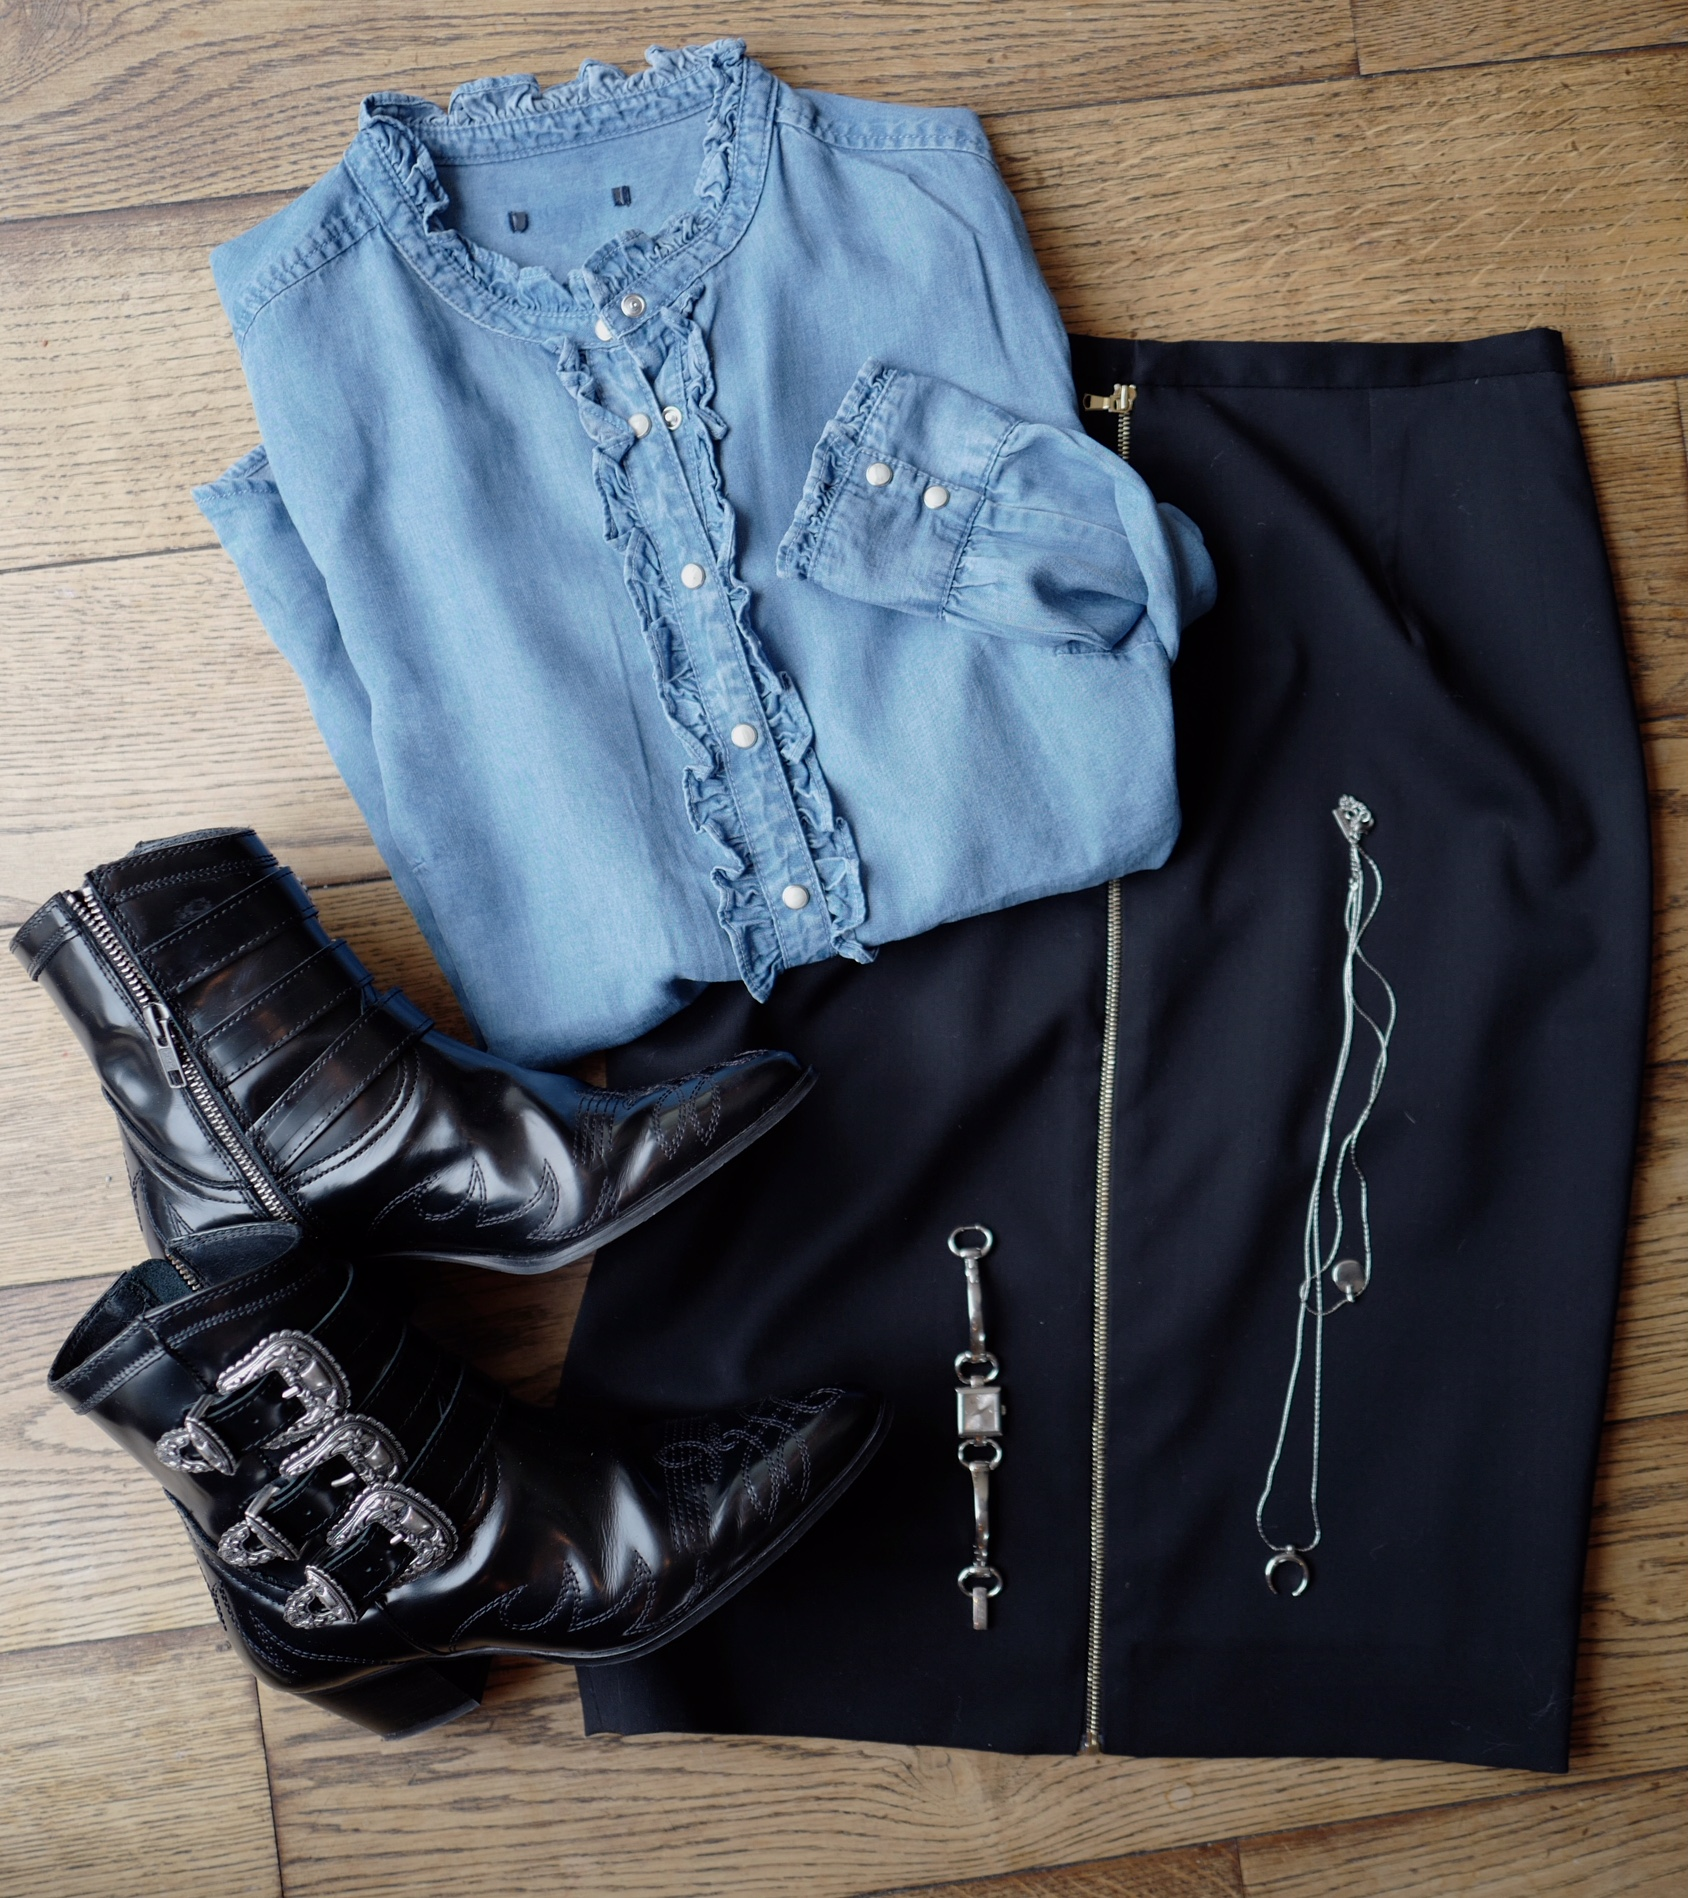 Chemise Kiabi, Jupe Pablo, Boots The Kooples, collier Free People, montre Gucci, blog mode